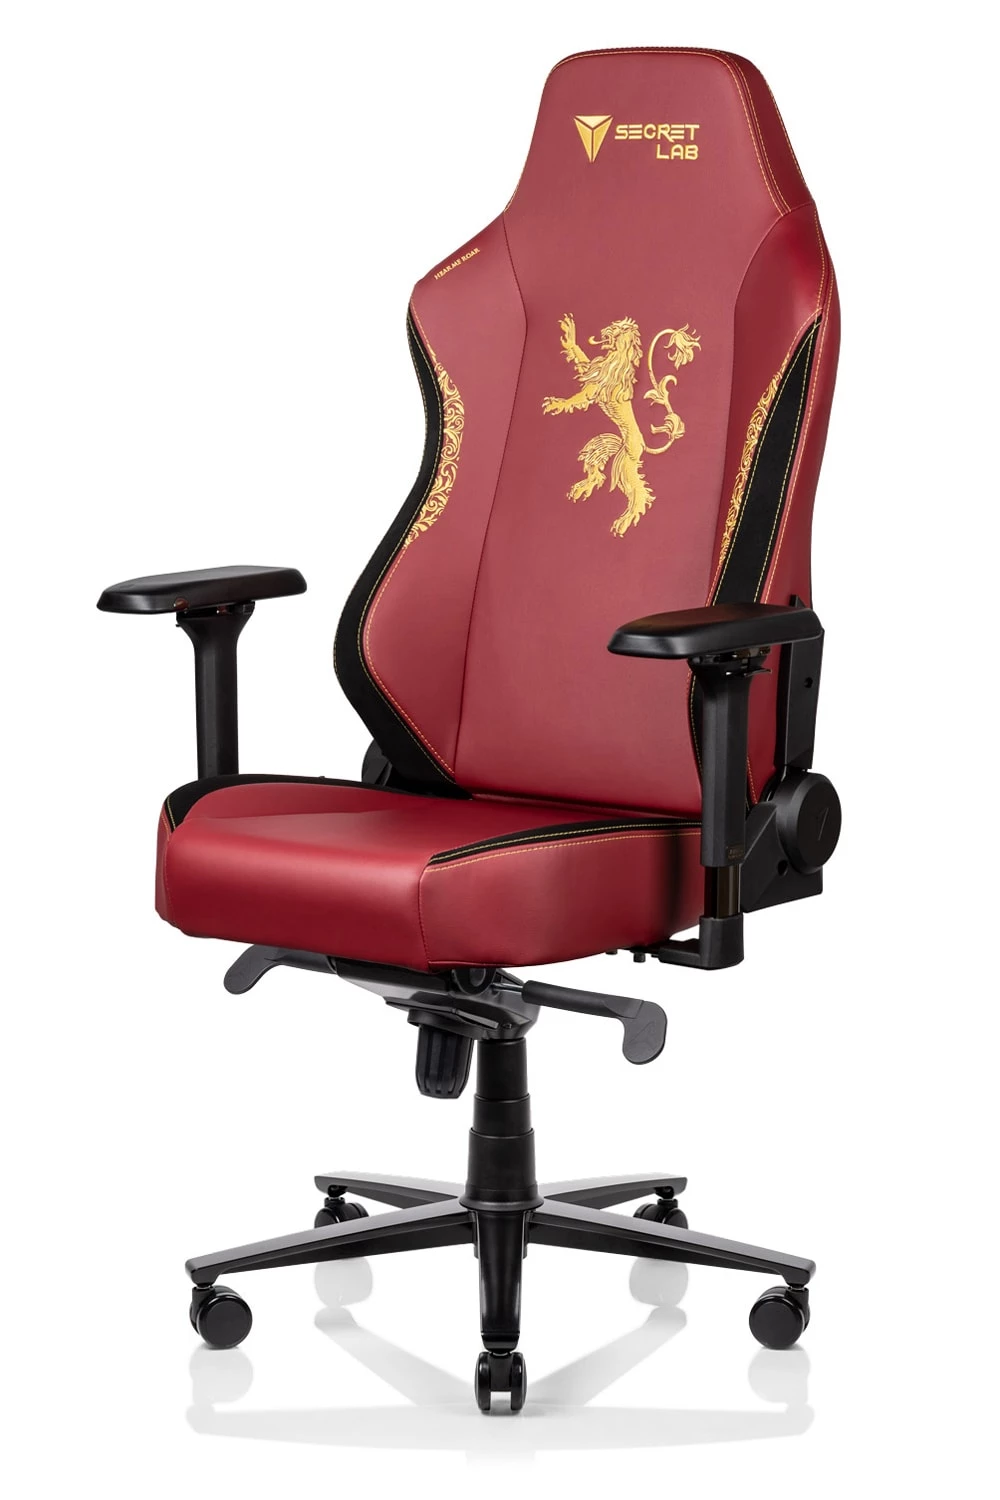 TITAN series gaming seats Secretlab UK Gaming chair